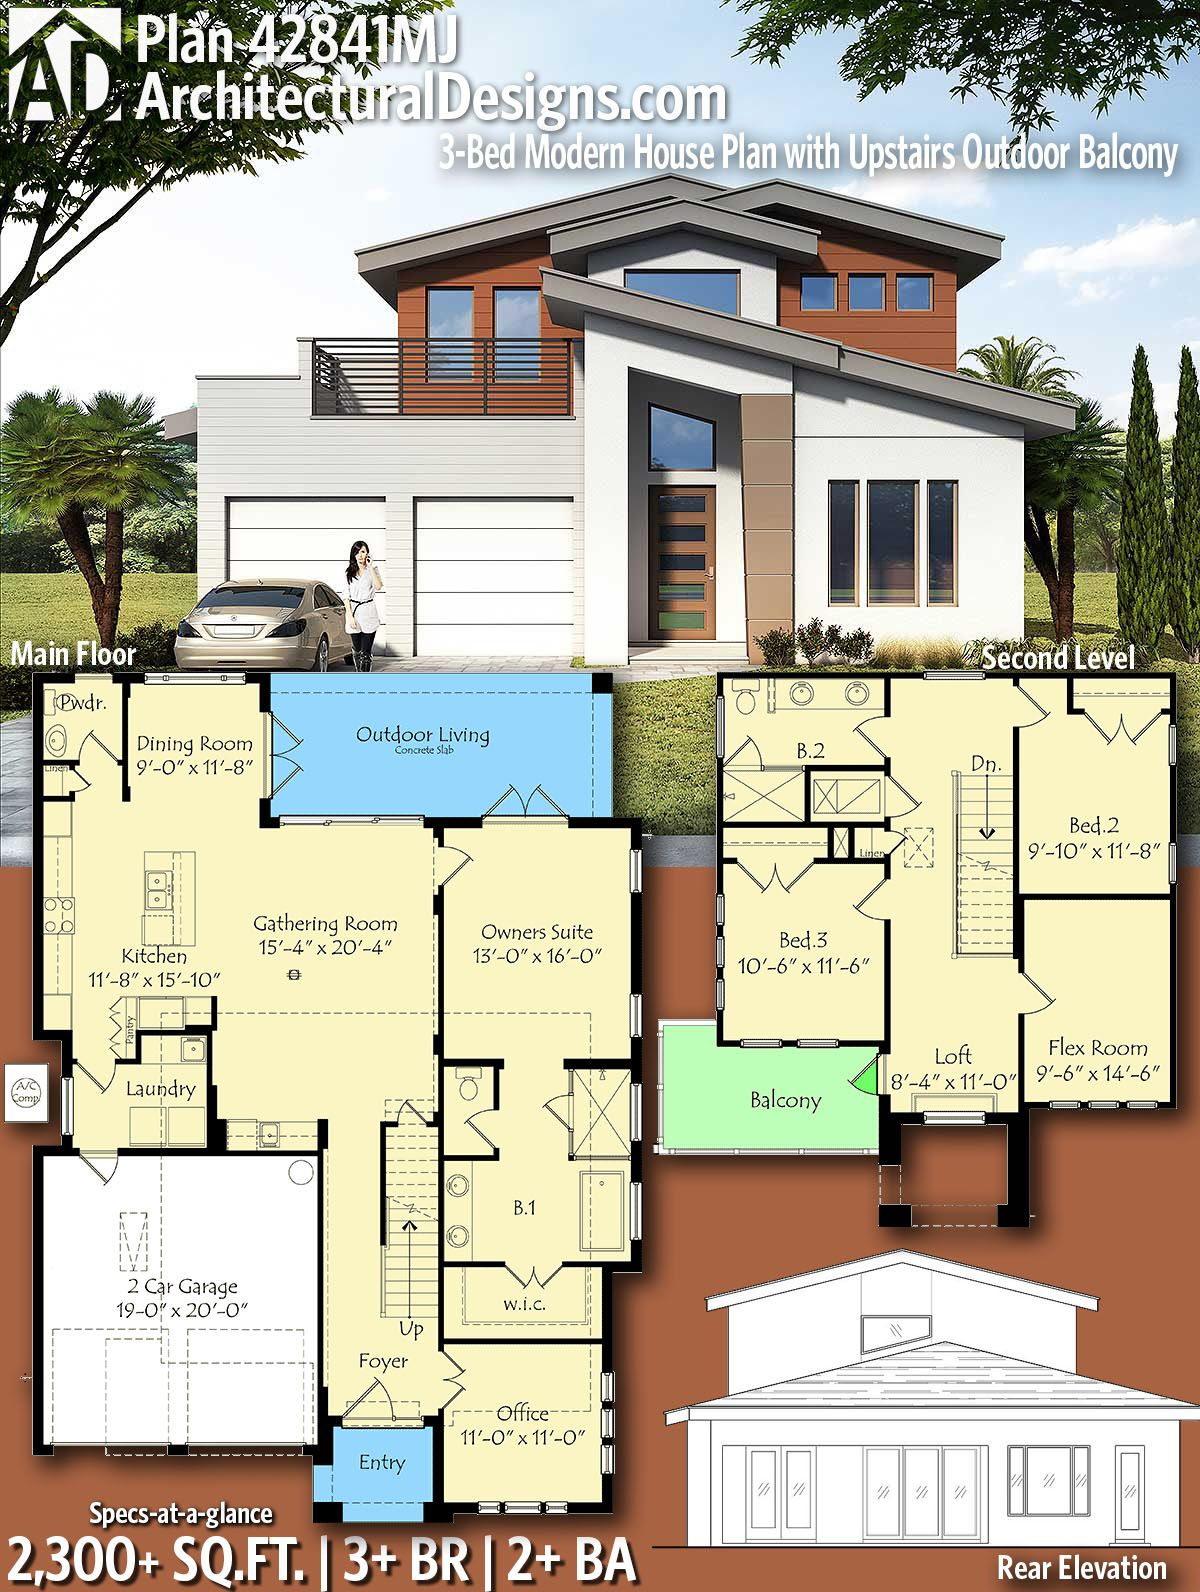 Plan 42841mj 3 Bed Modern House Plan With Upstairs Outdoor Balcony Farmhouse Style House Plans Modern House Plan Modern House Plans